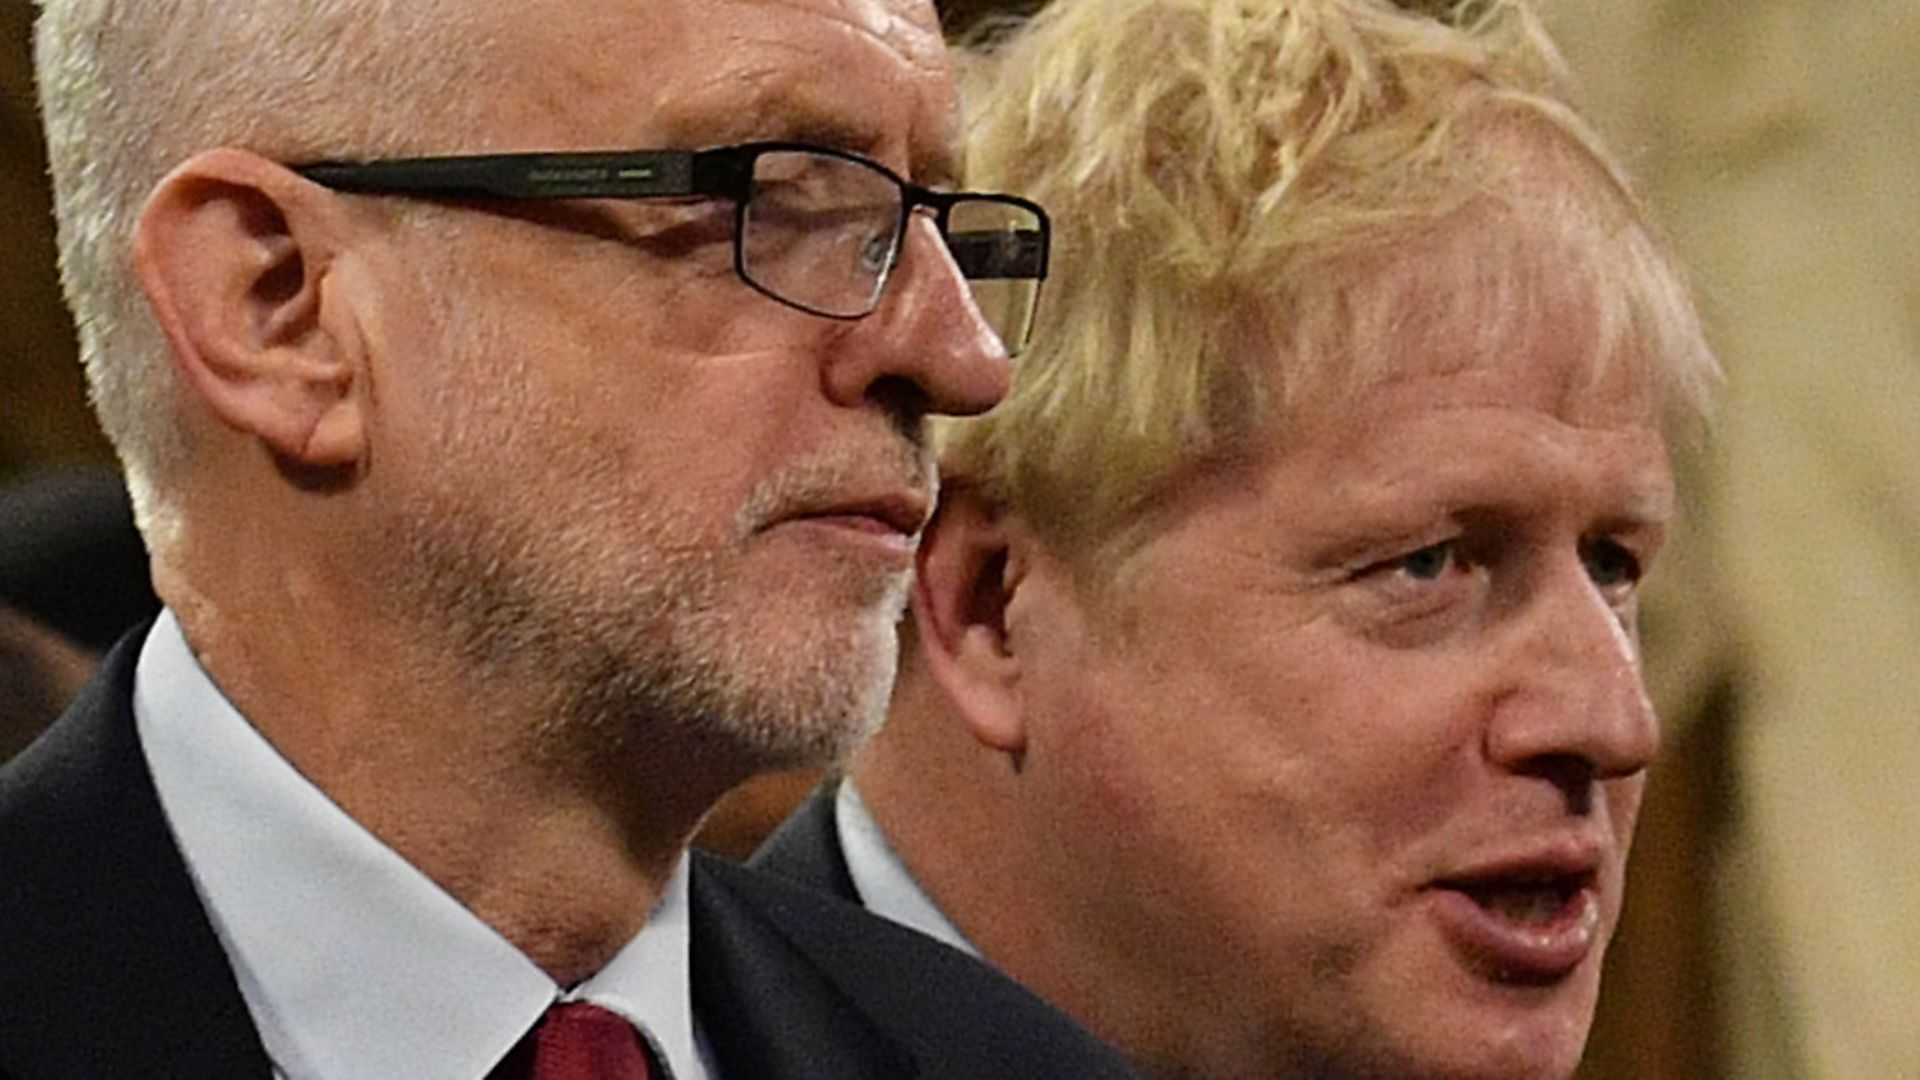 Prime Minister Boris Johnson (right) speaks with Jeremy Corbyn in the Central Lobby before the election. Picture: Daniel Leal-Olivas/PA. - Credit: PA Wire/PA Images